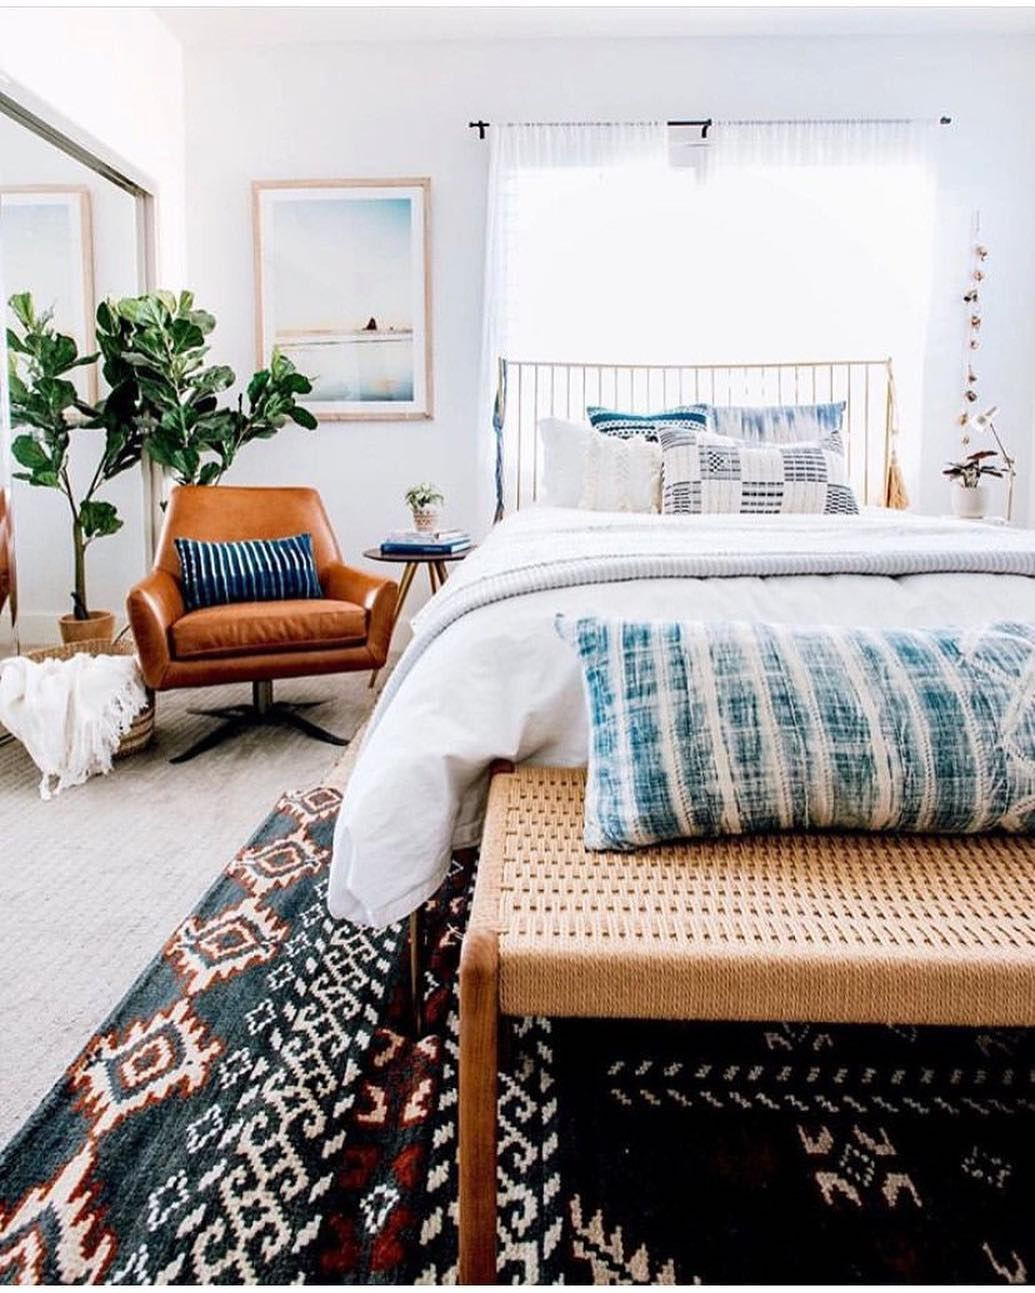 Real Simple On Instagram Dream Weekend Plans Spending A Whole Saturday Morning In Bed Without A Chic Home Decor Eclectic Home Interior Design Bedroom Small Real simple bedroom ideas